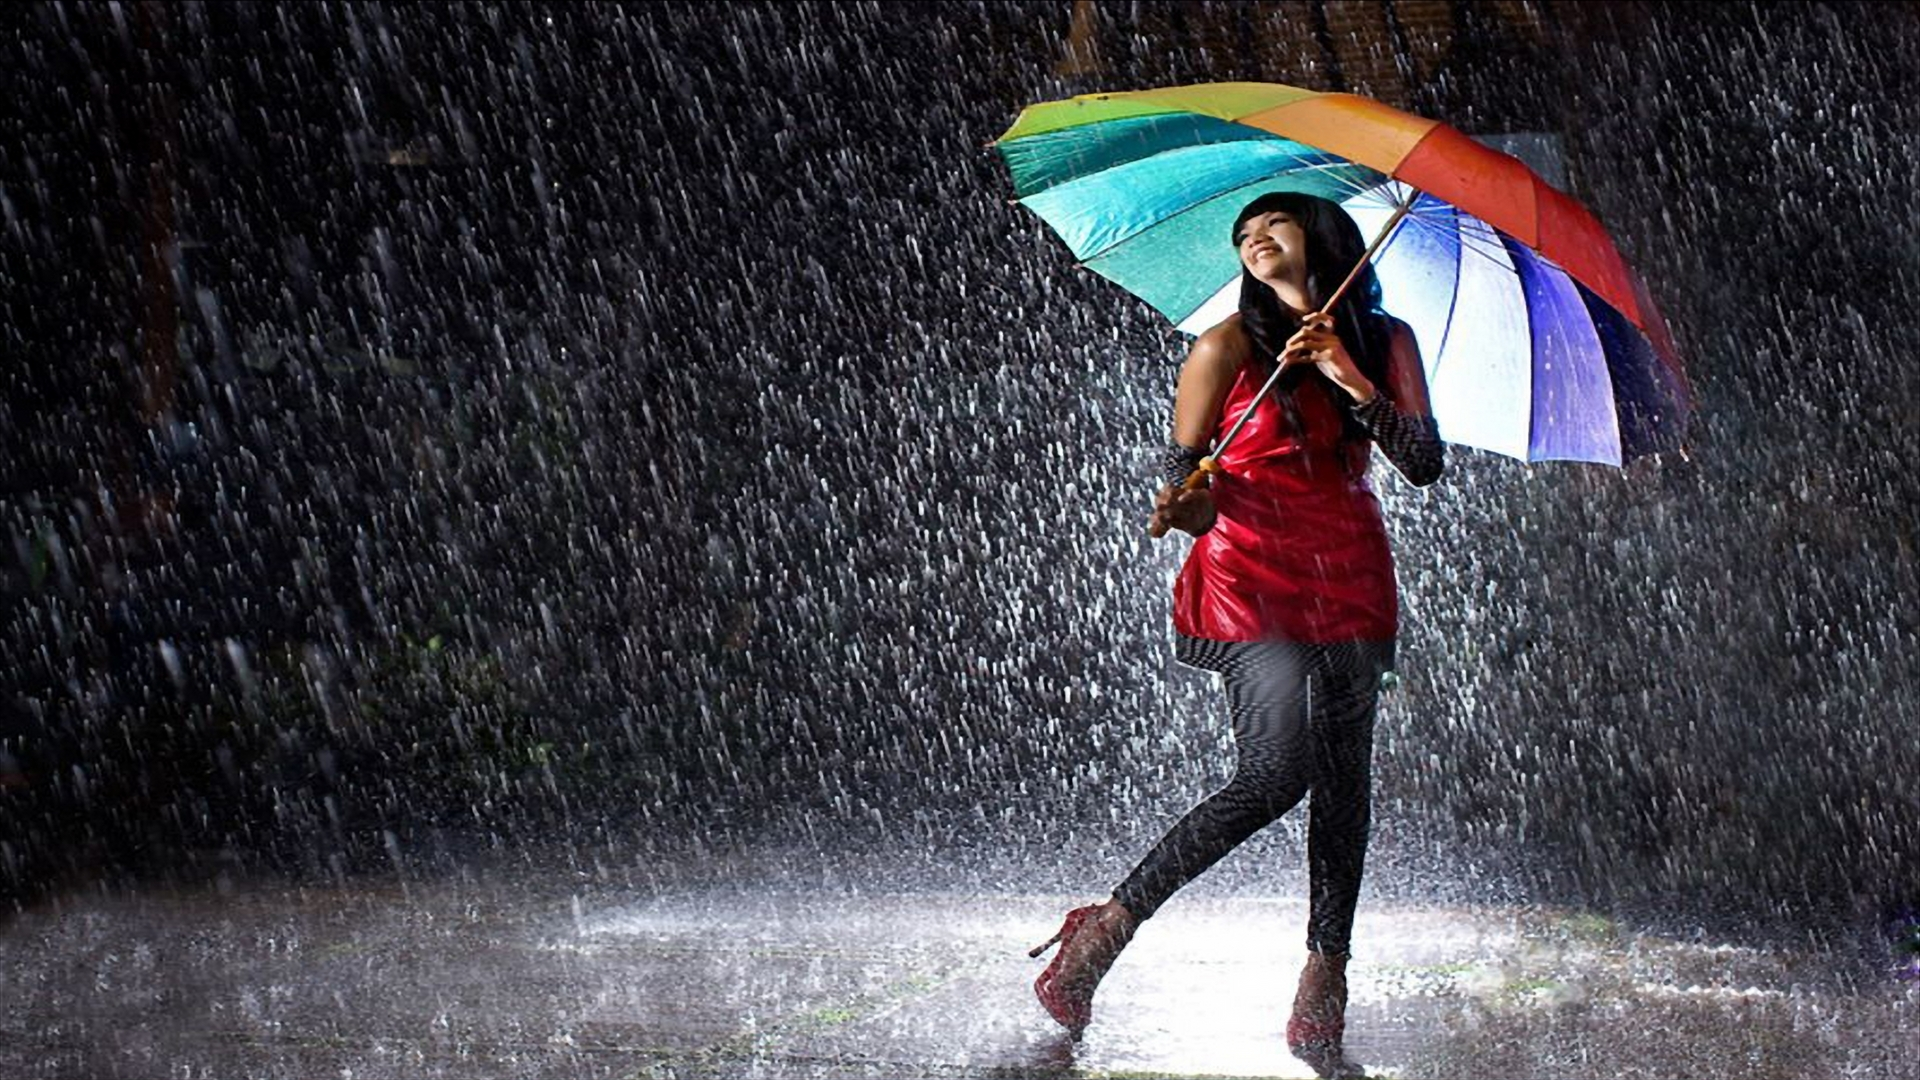 Rainy Night HD Wallpapers Pictures Images Backgrounds Photos 1920x1080